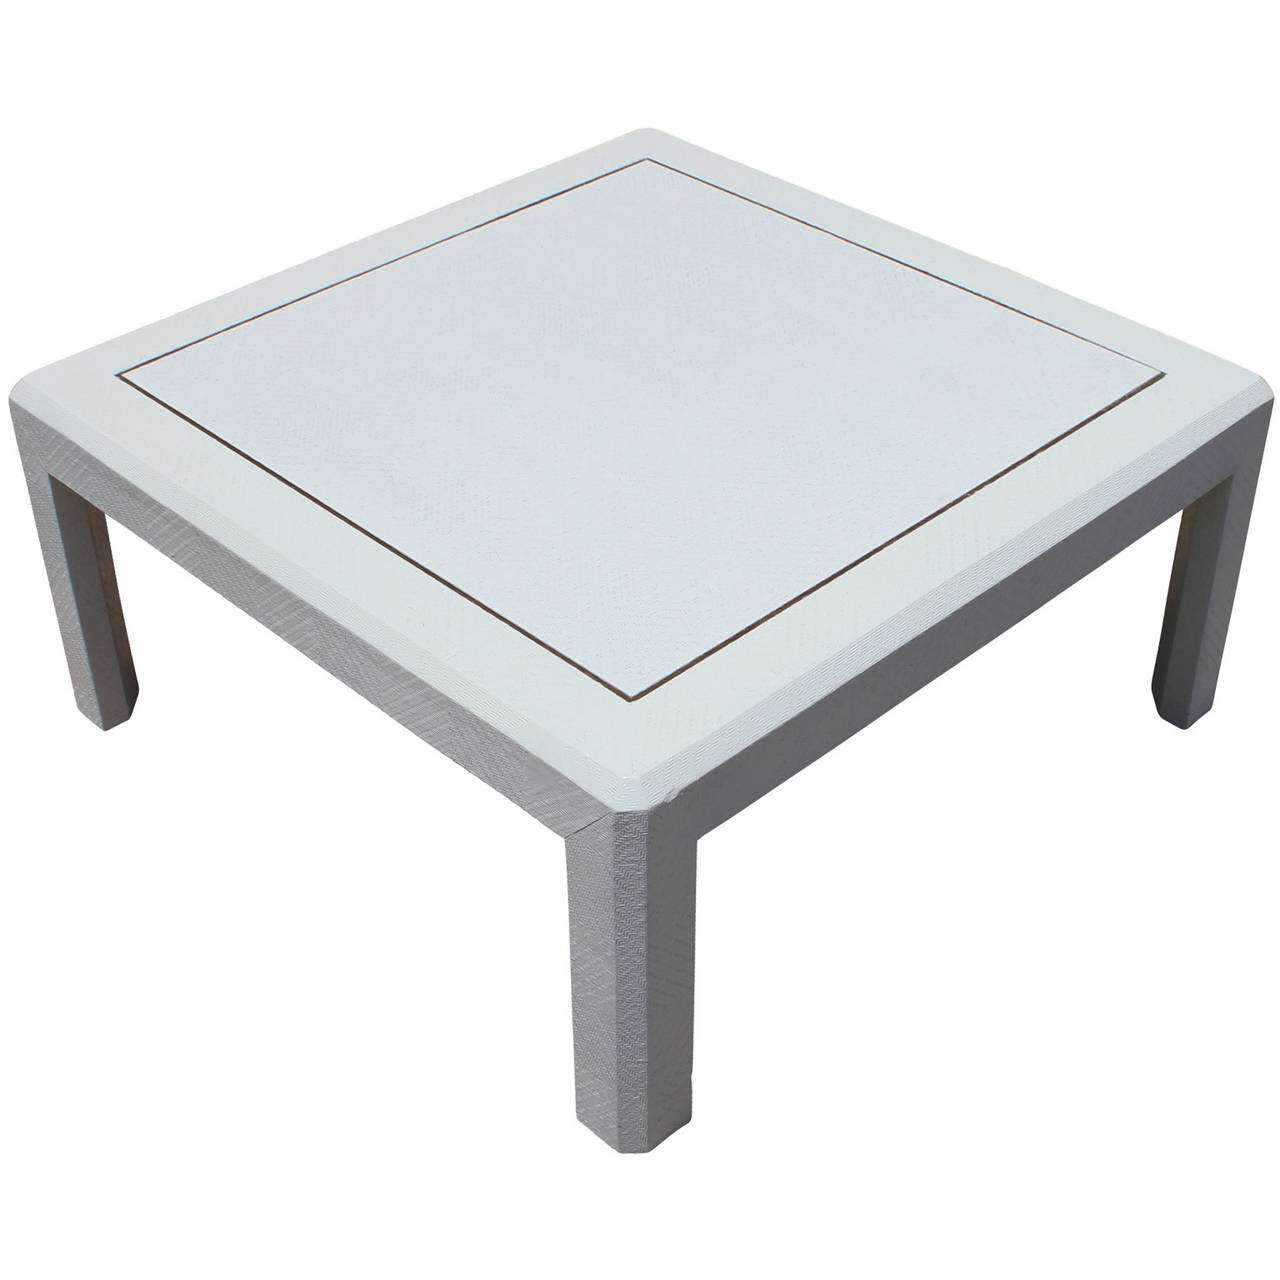 Modern Harrison Van Horn Style Square White Lacquered Raffia Regarding Most Current Square White Coffee Tables (View 9 of 20)